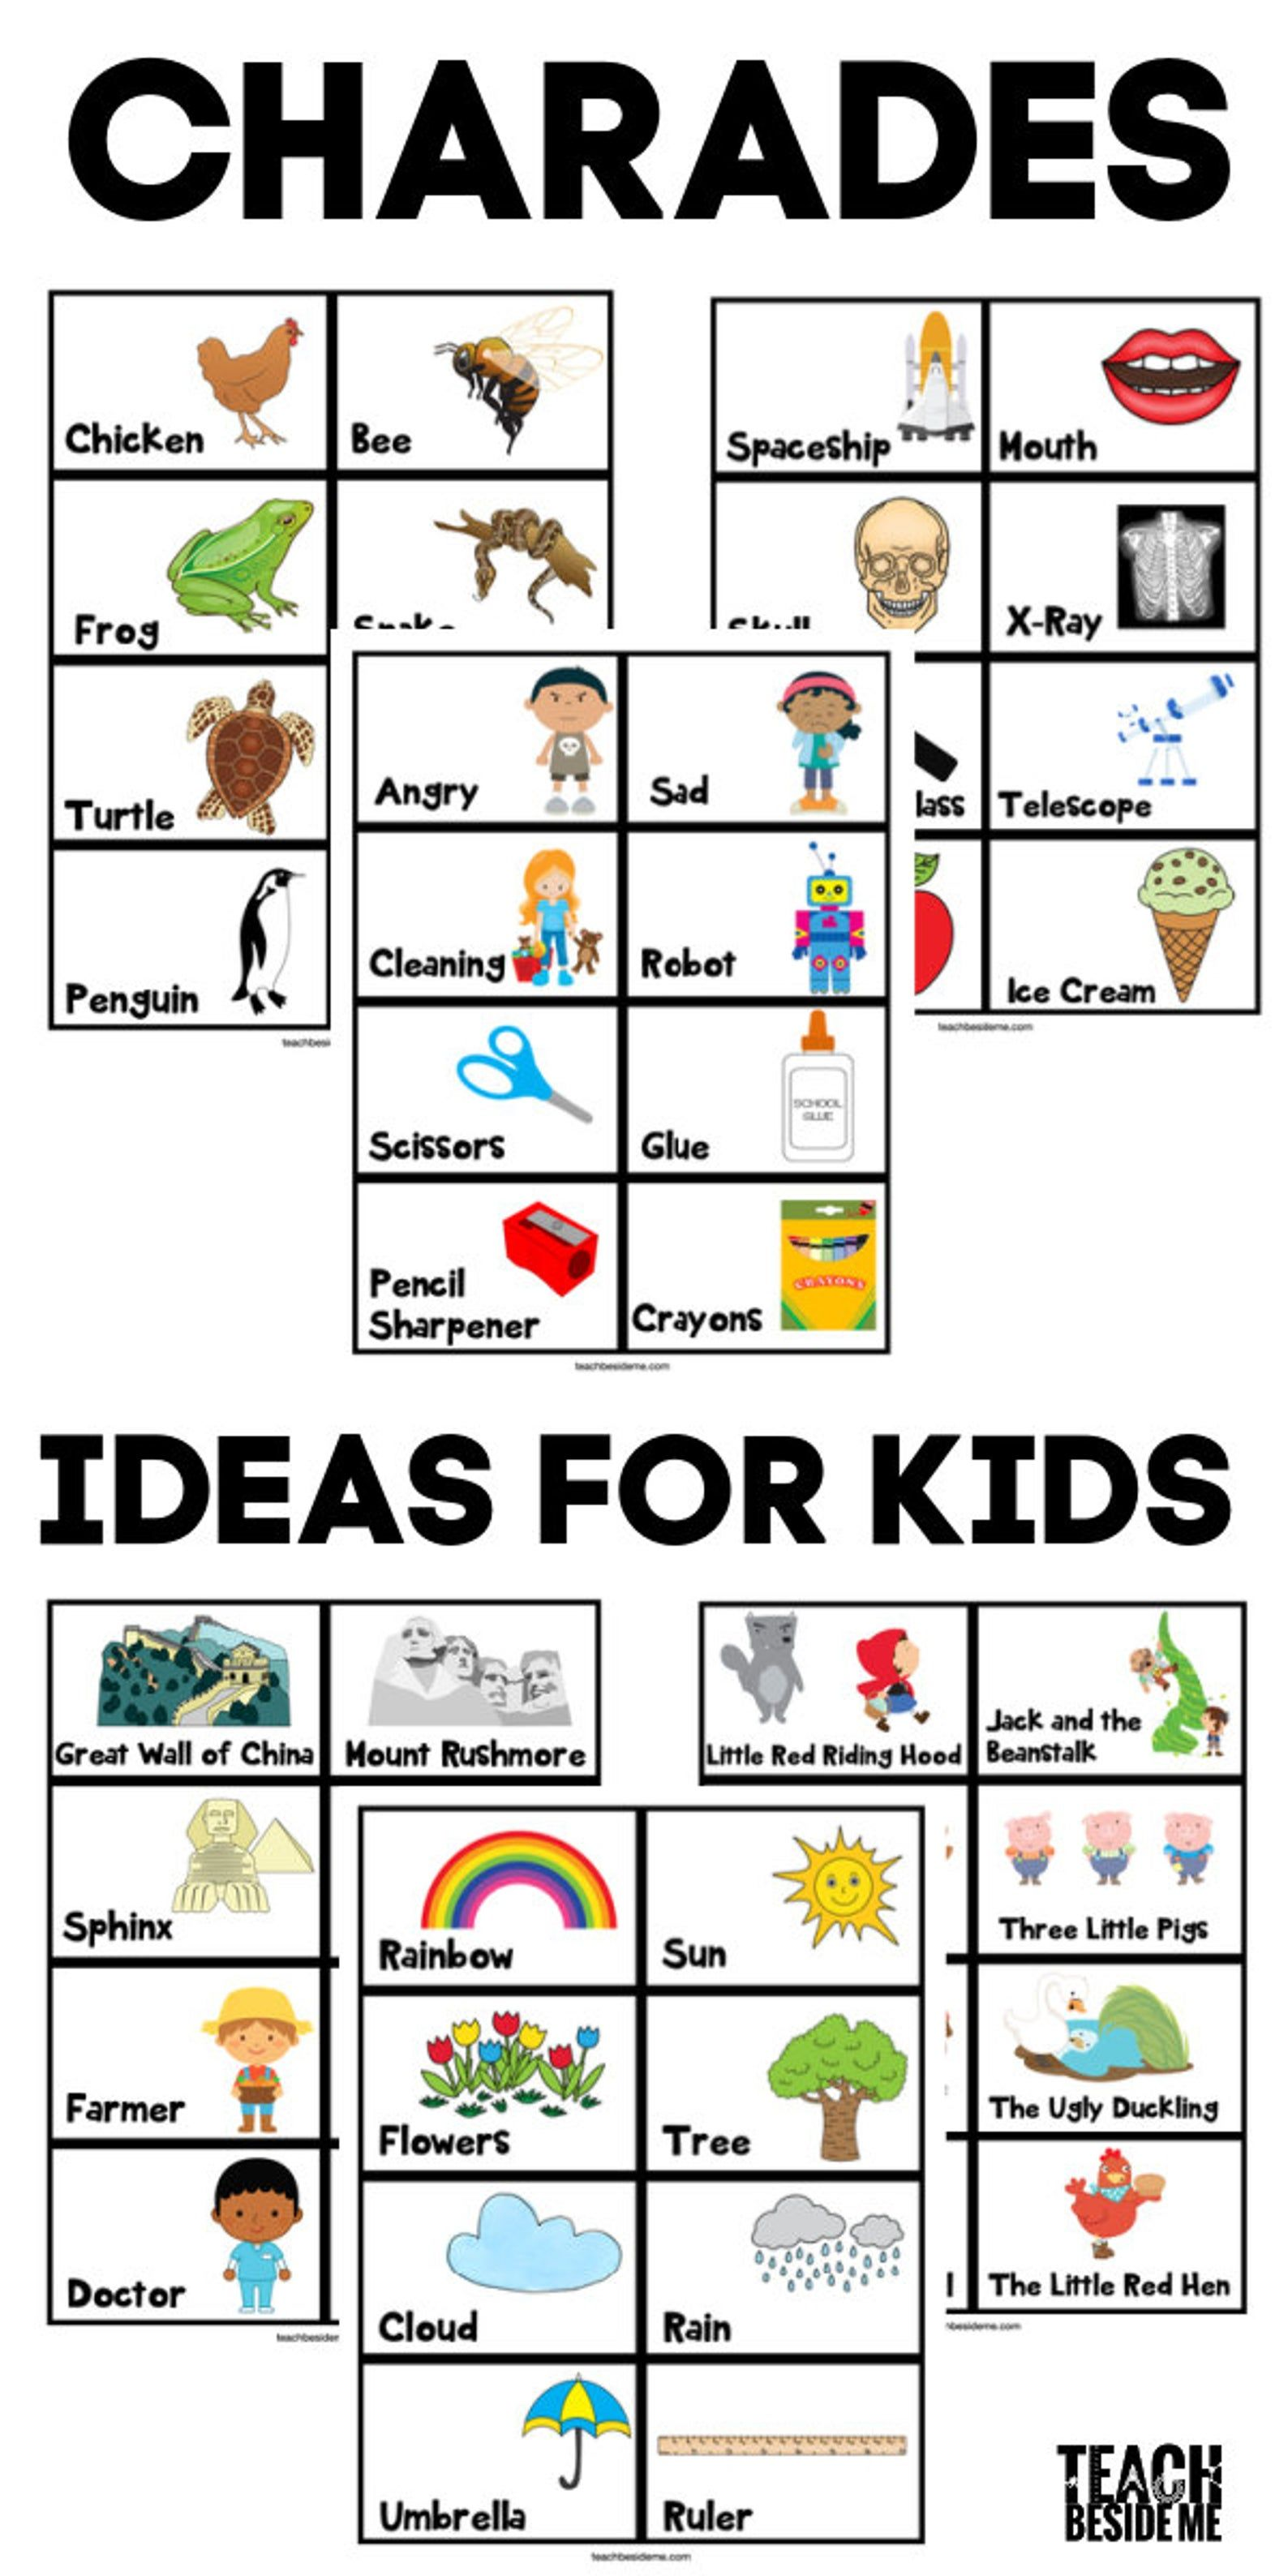 Charades Idea Cards for Kids